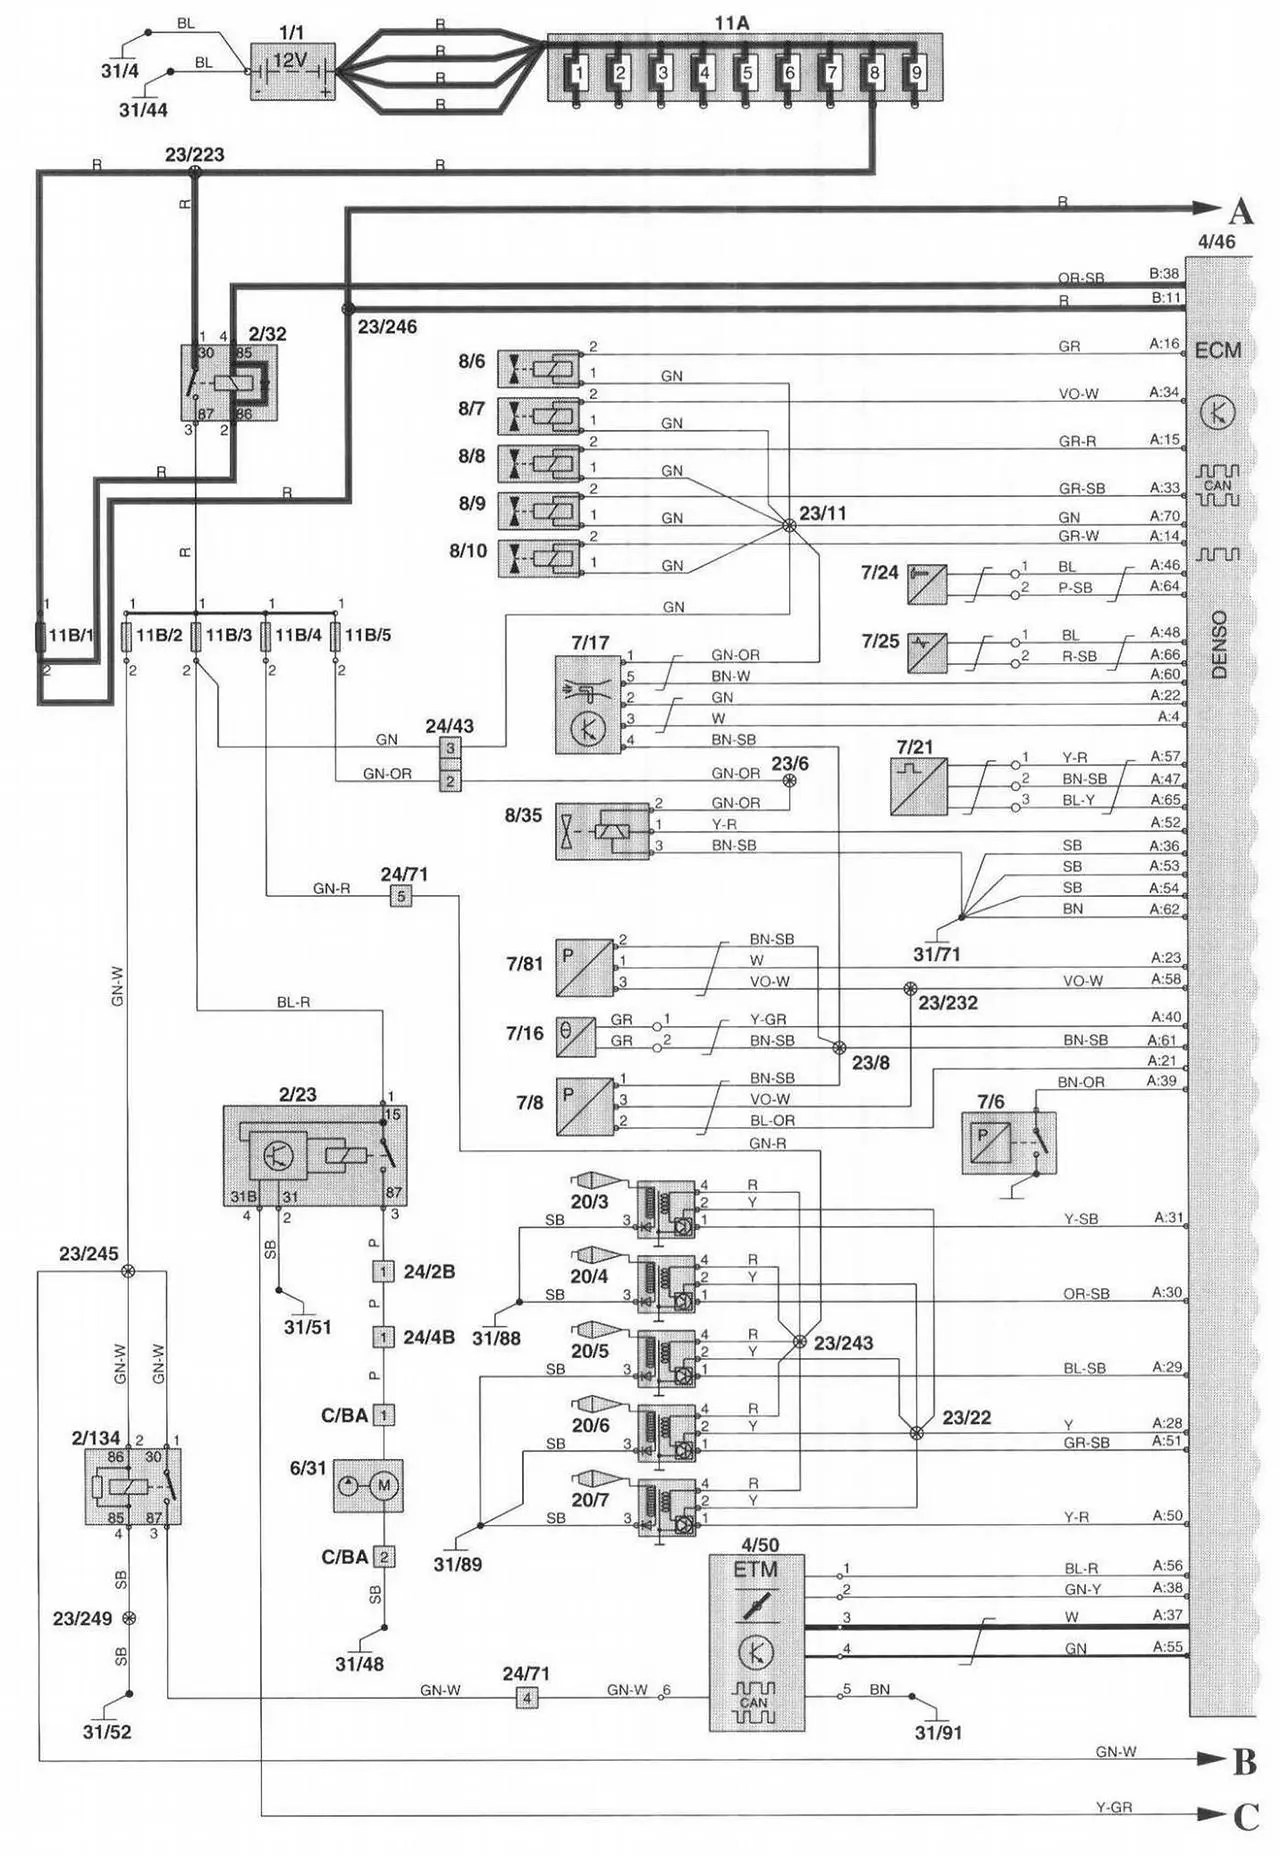 hight resolution of 2004 volvo s40 fuse box diagram wiring diagram used 2003 volvo xc90 fuse box location 2003 volvo fuse box